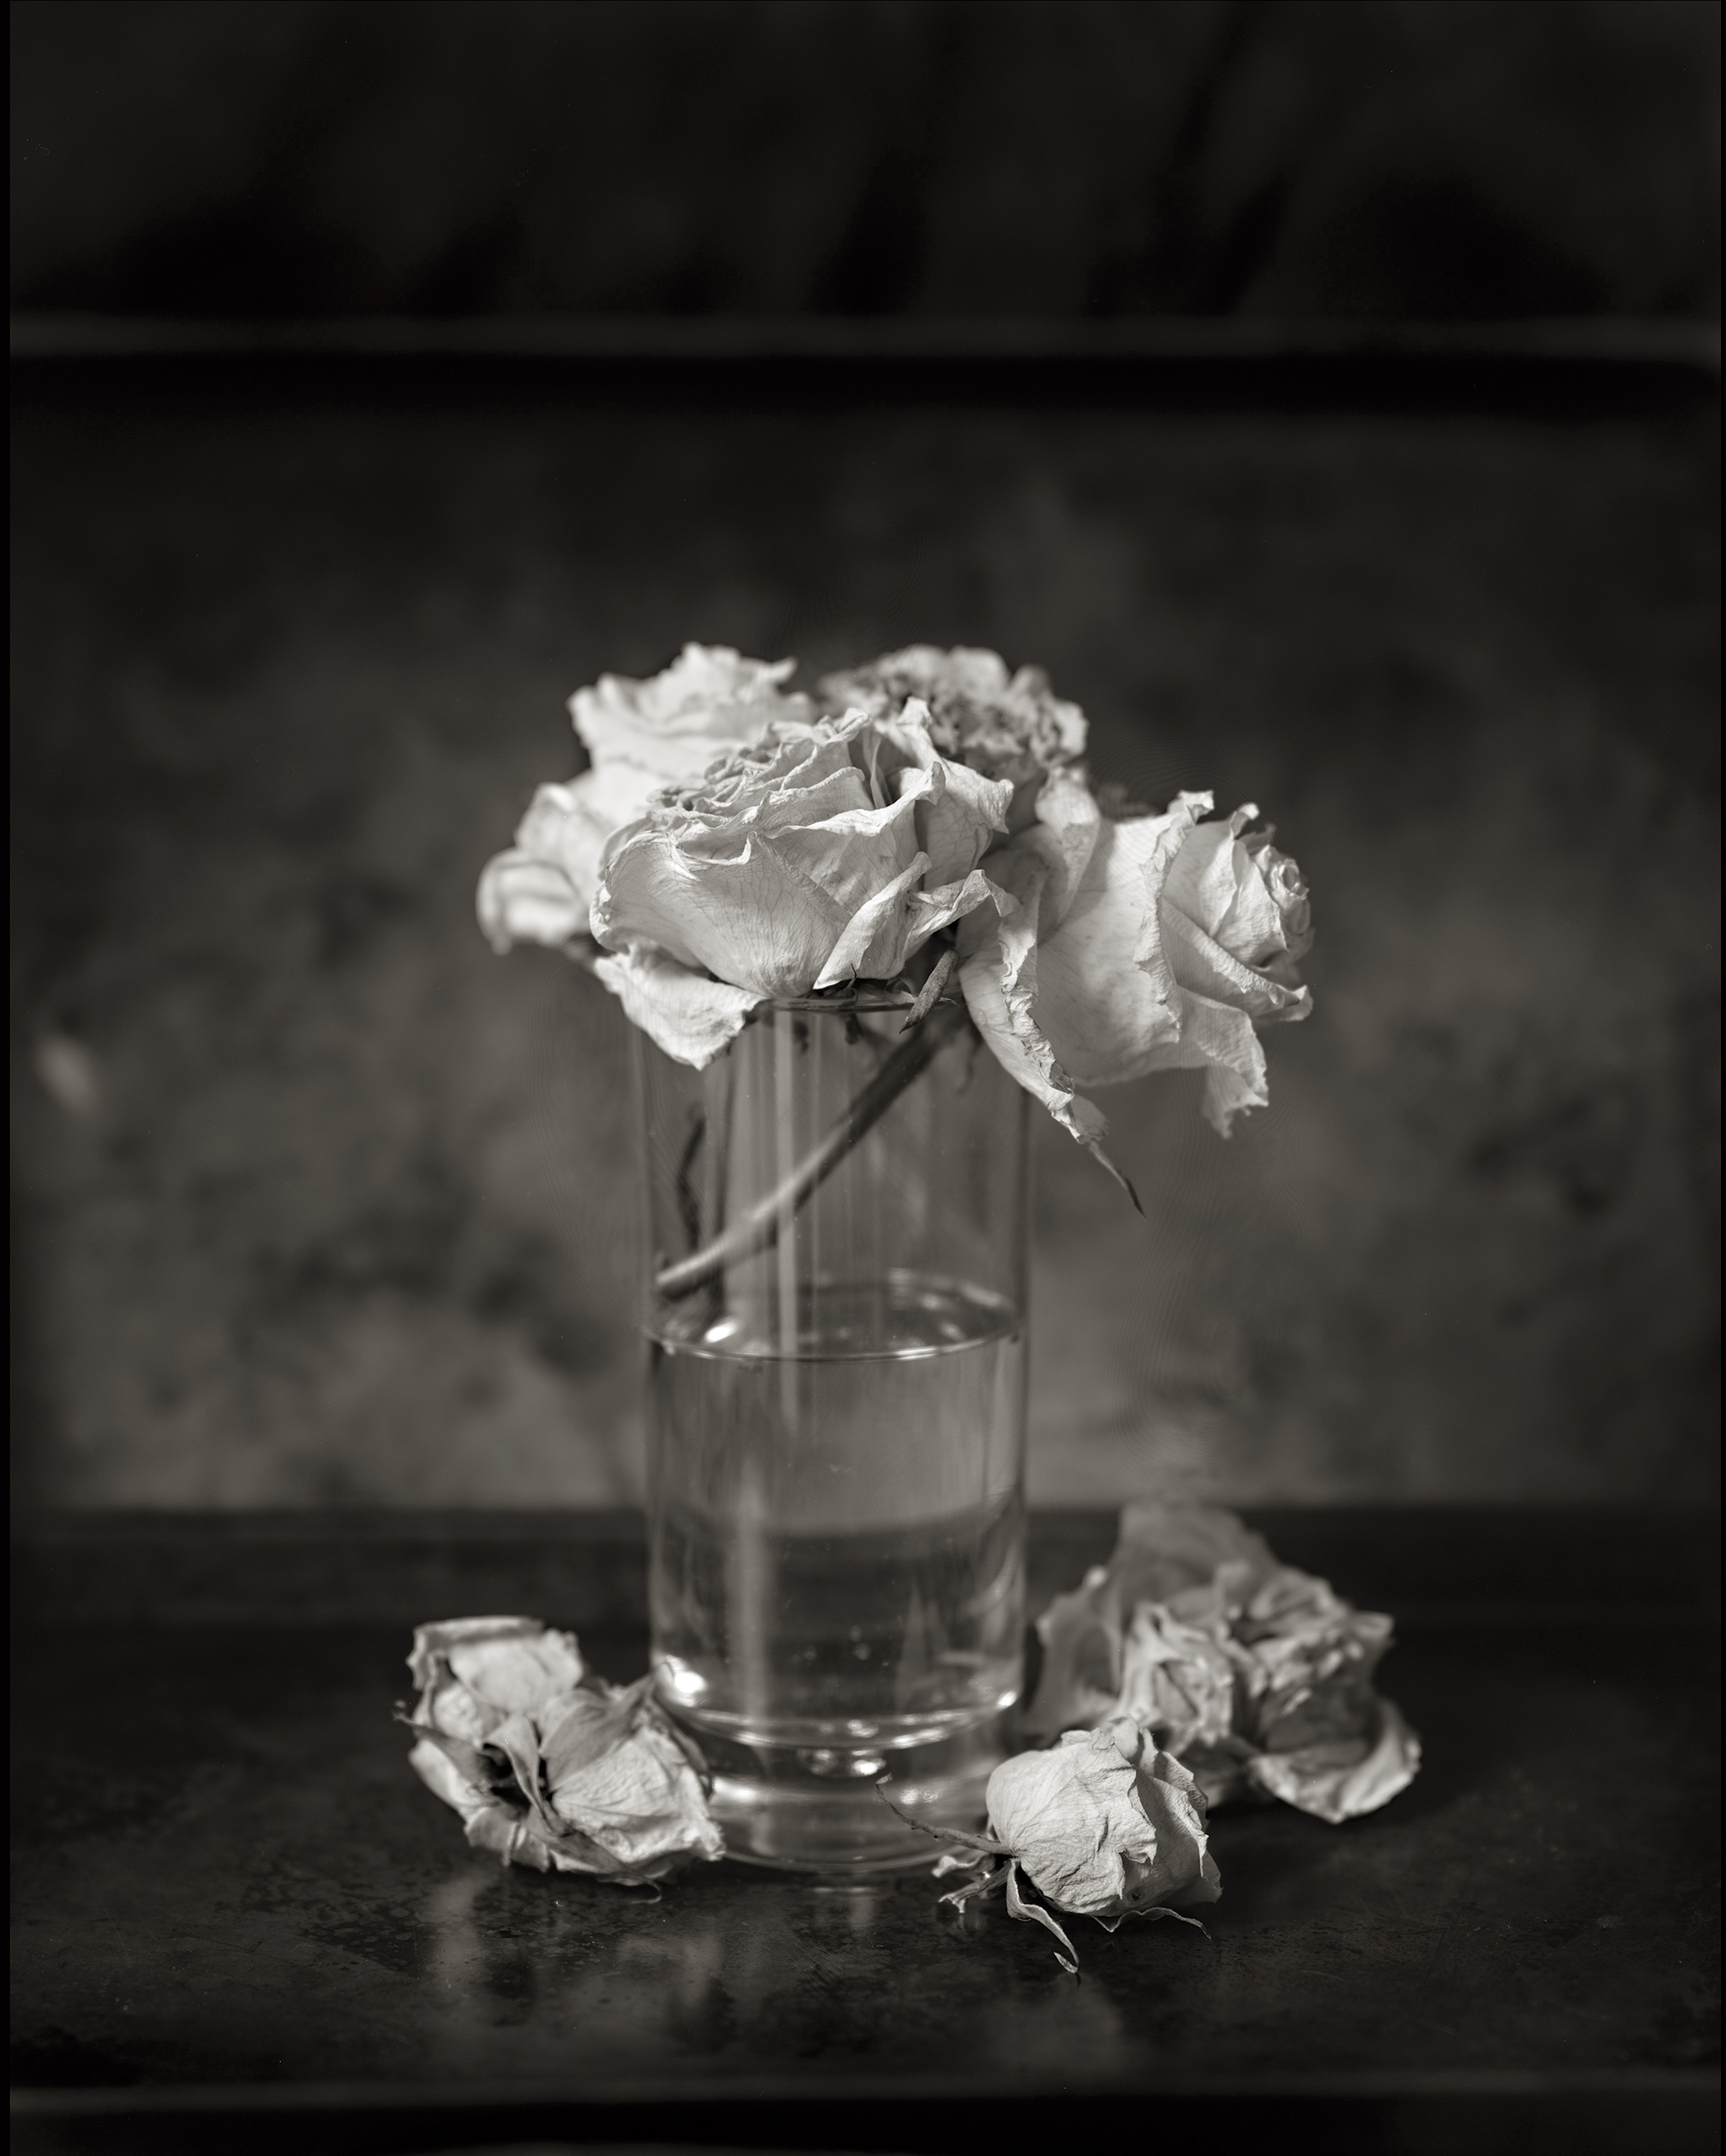 FLOWERS IN A GLASS HALF EMPTY